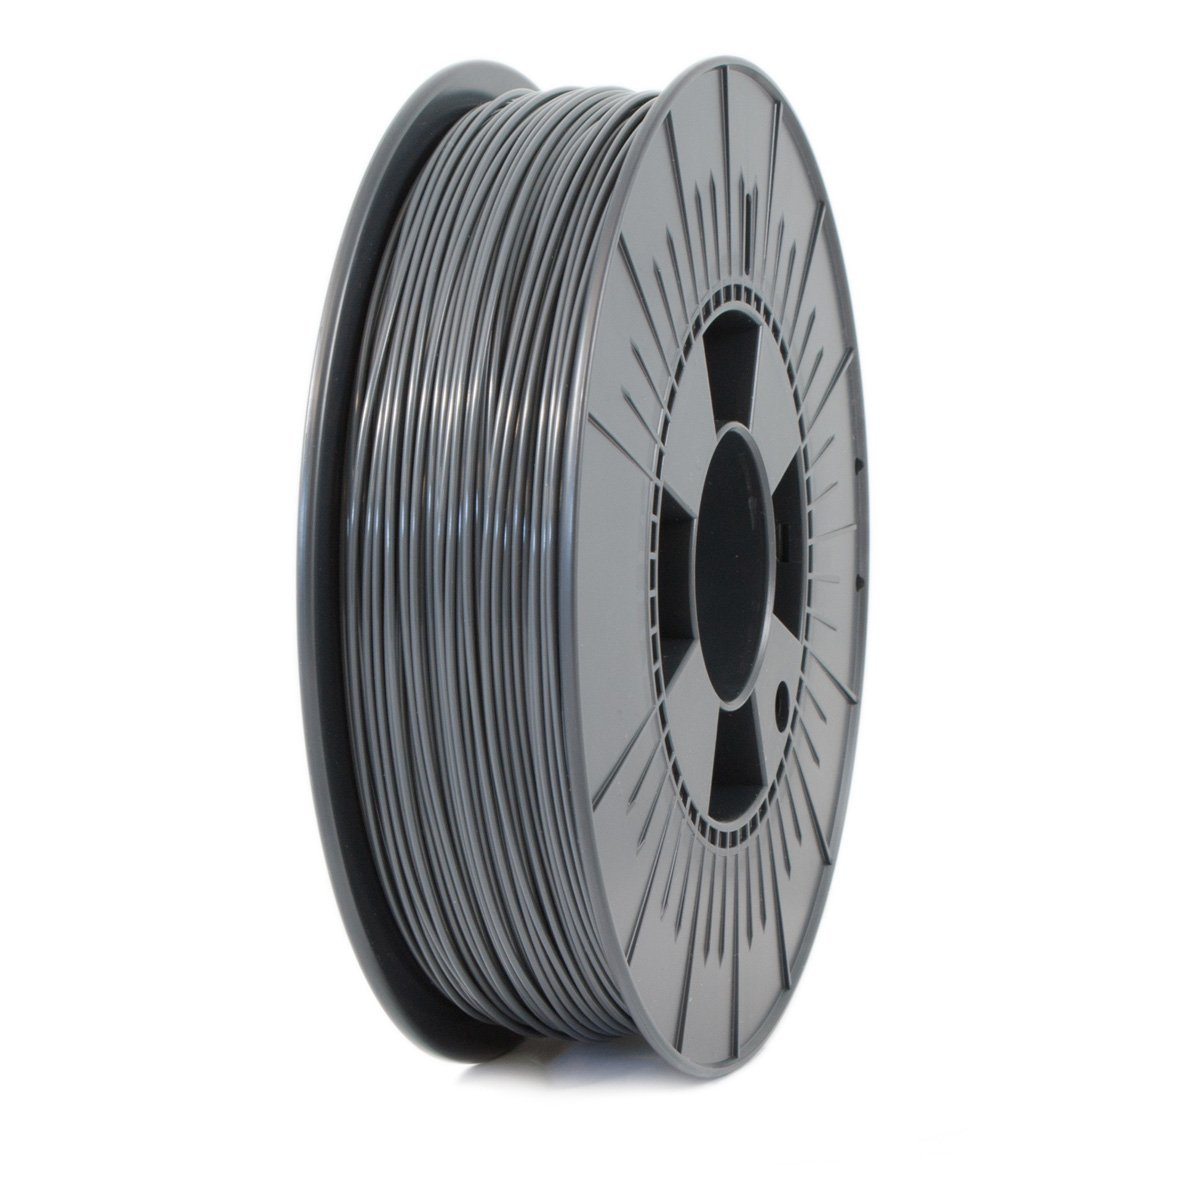 Ice Filaments  Gentle Grey PLA 2.85 mm